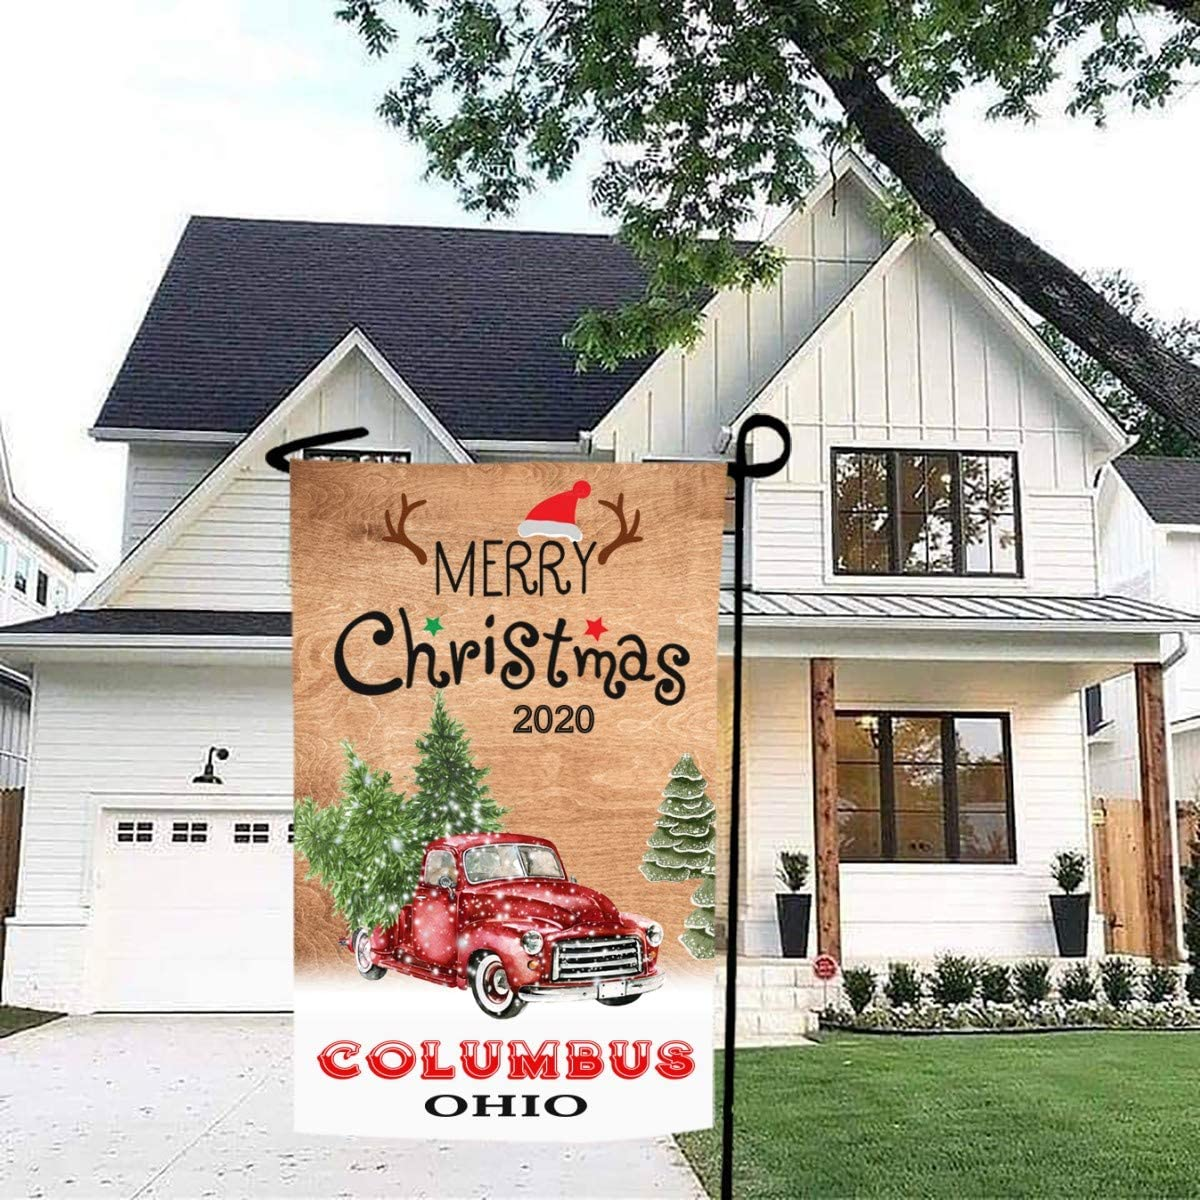 Merry Christmas Garden Flag Red Truck 2020 Columbus Ohio State - Rustic Winter Garden Yard Decorations, Outdoor Flag 12x18 Inch Double-Sided for Home, Garden (Not Included Stand)